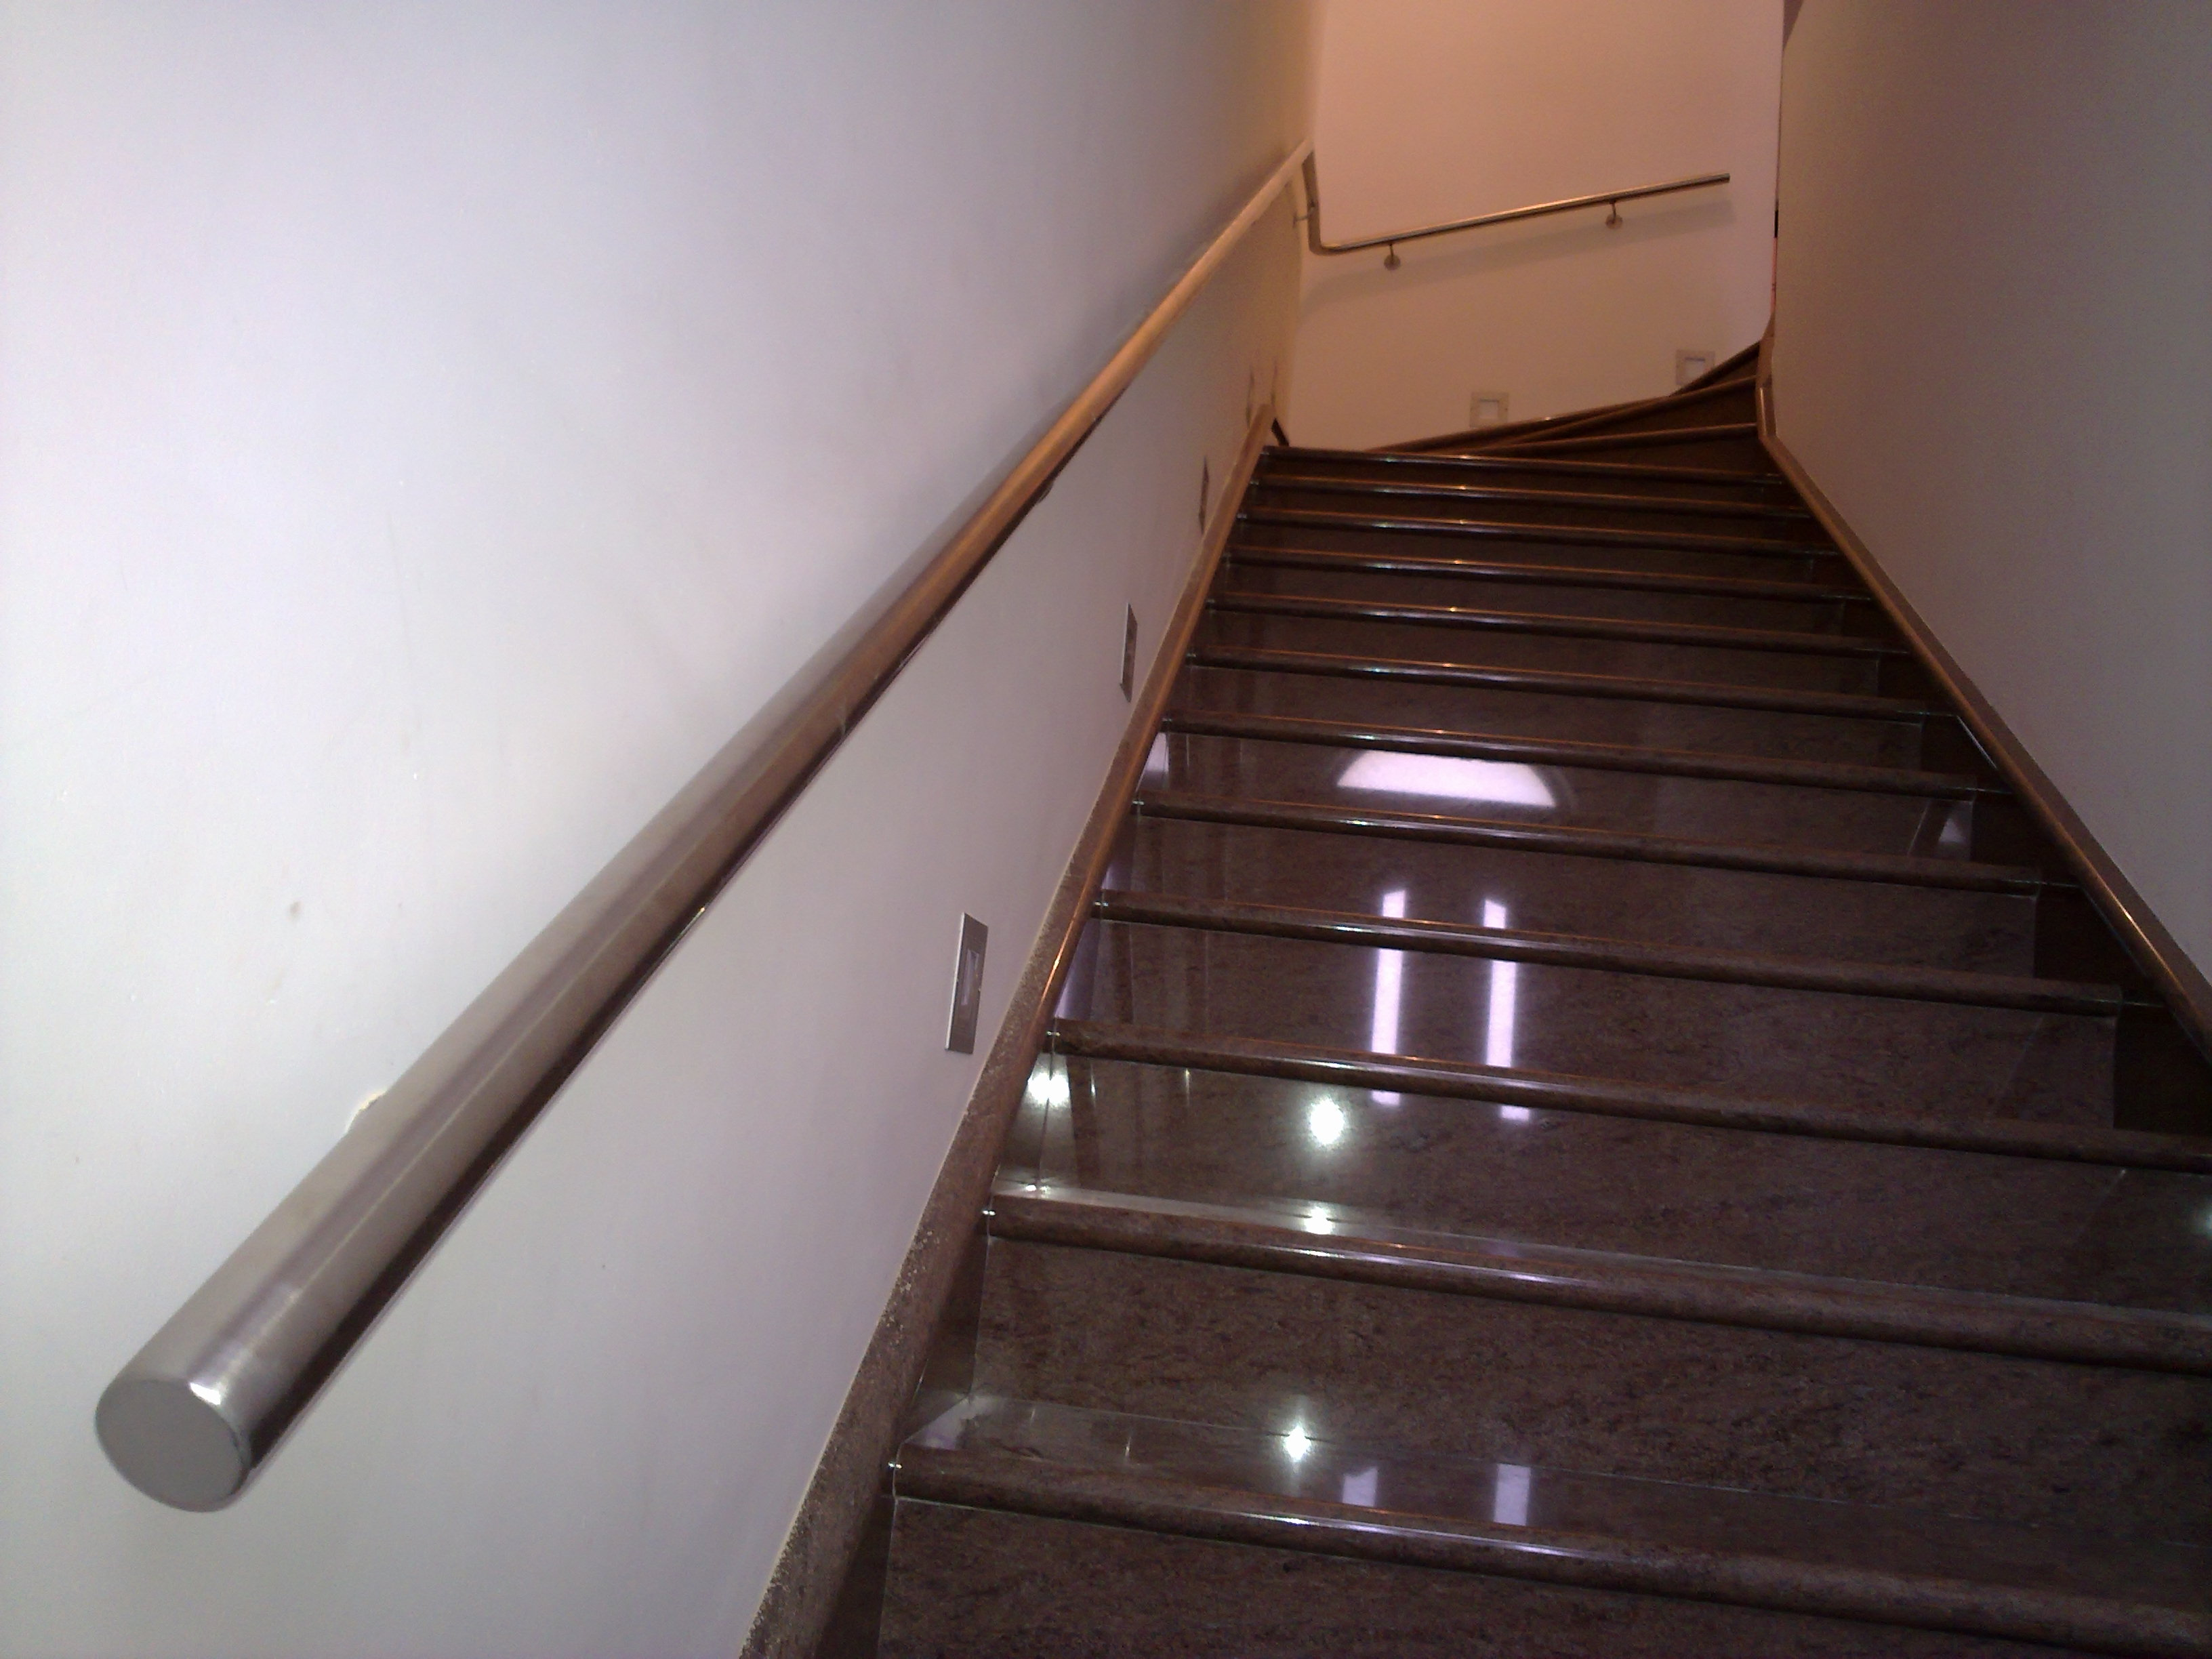 Spiral stainless steel handrail and